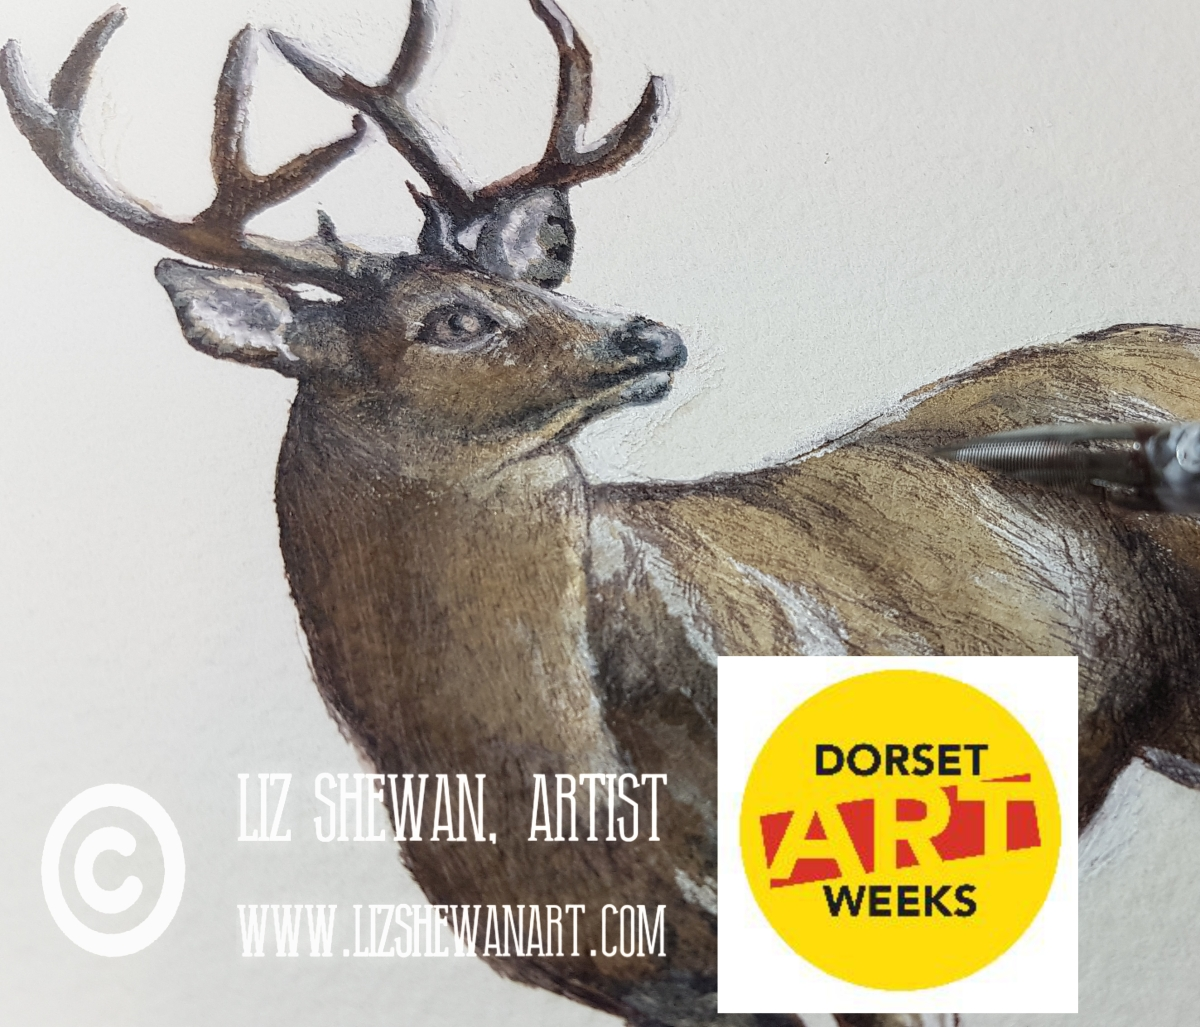 Dorset Art Weeks at Cygnet Gallery in Shaftesbury, Dorset | May and June 2021